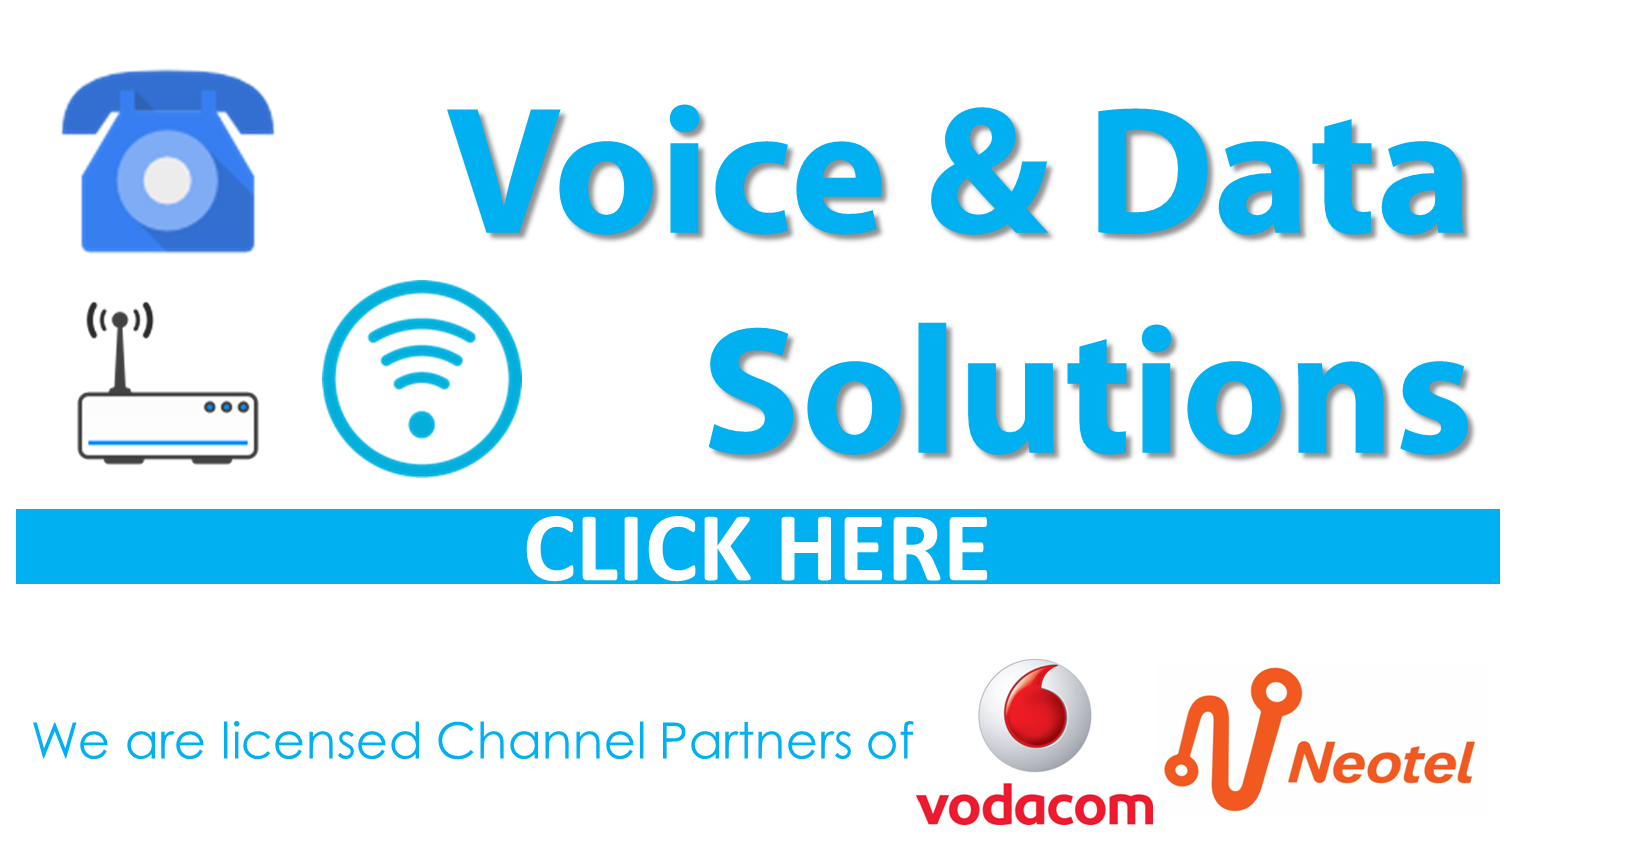 Voice and Data Solutions